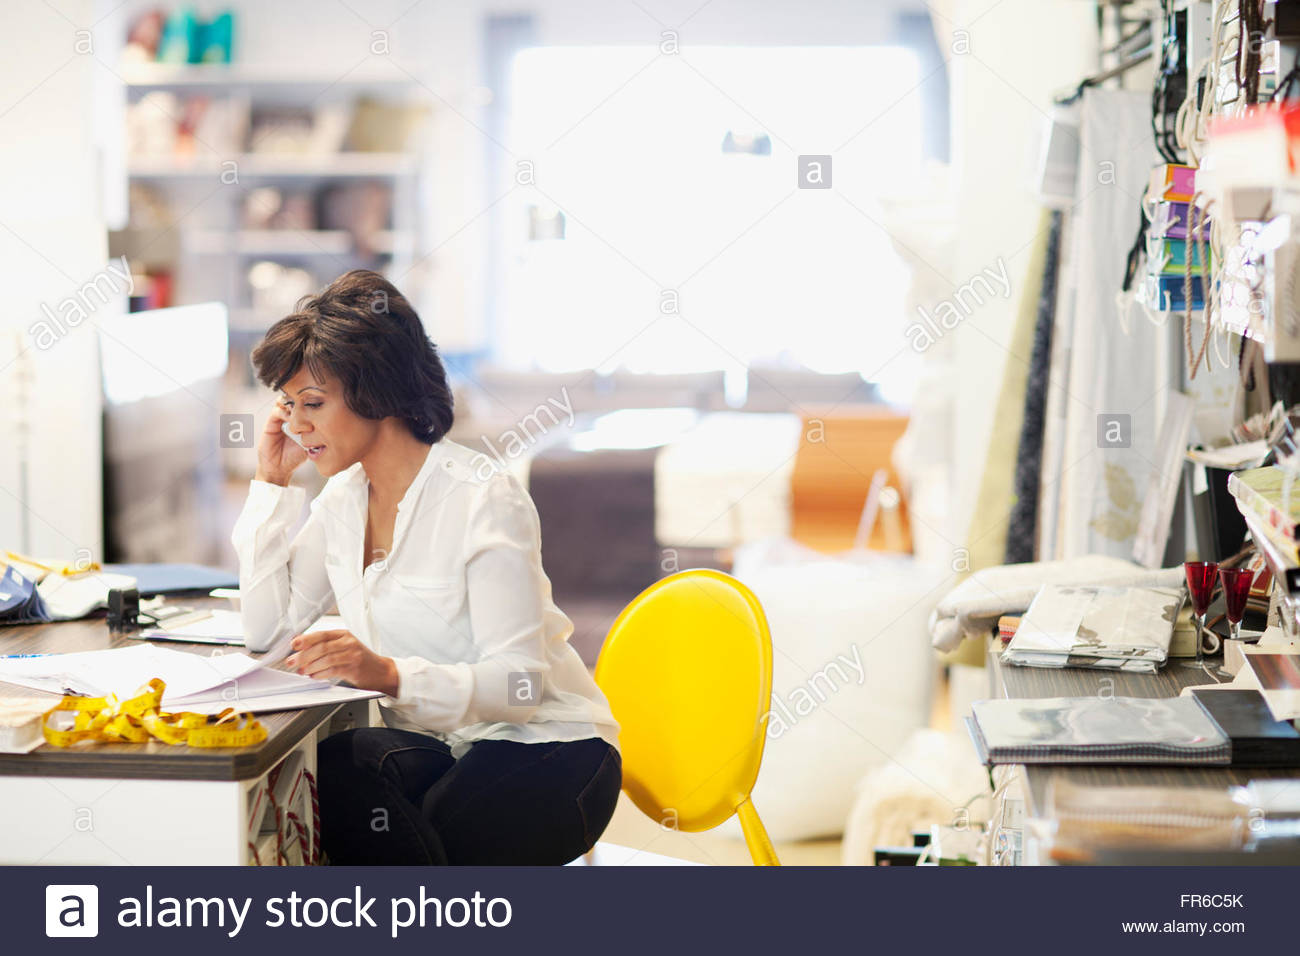 designer on phone call - Stock Image